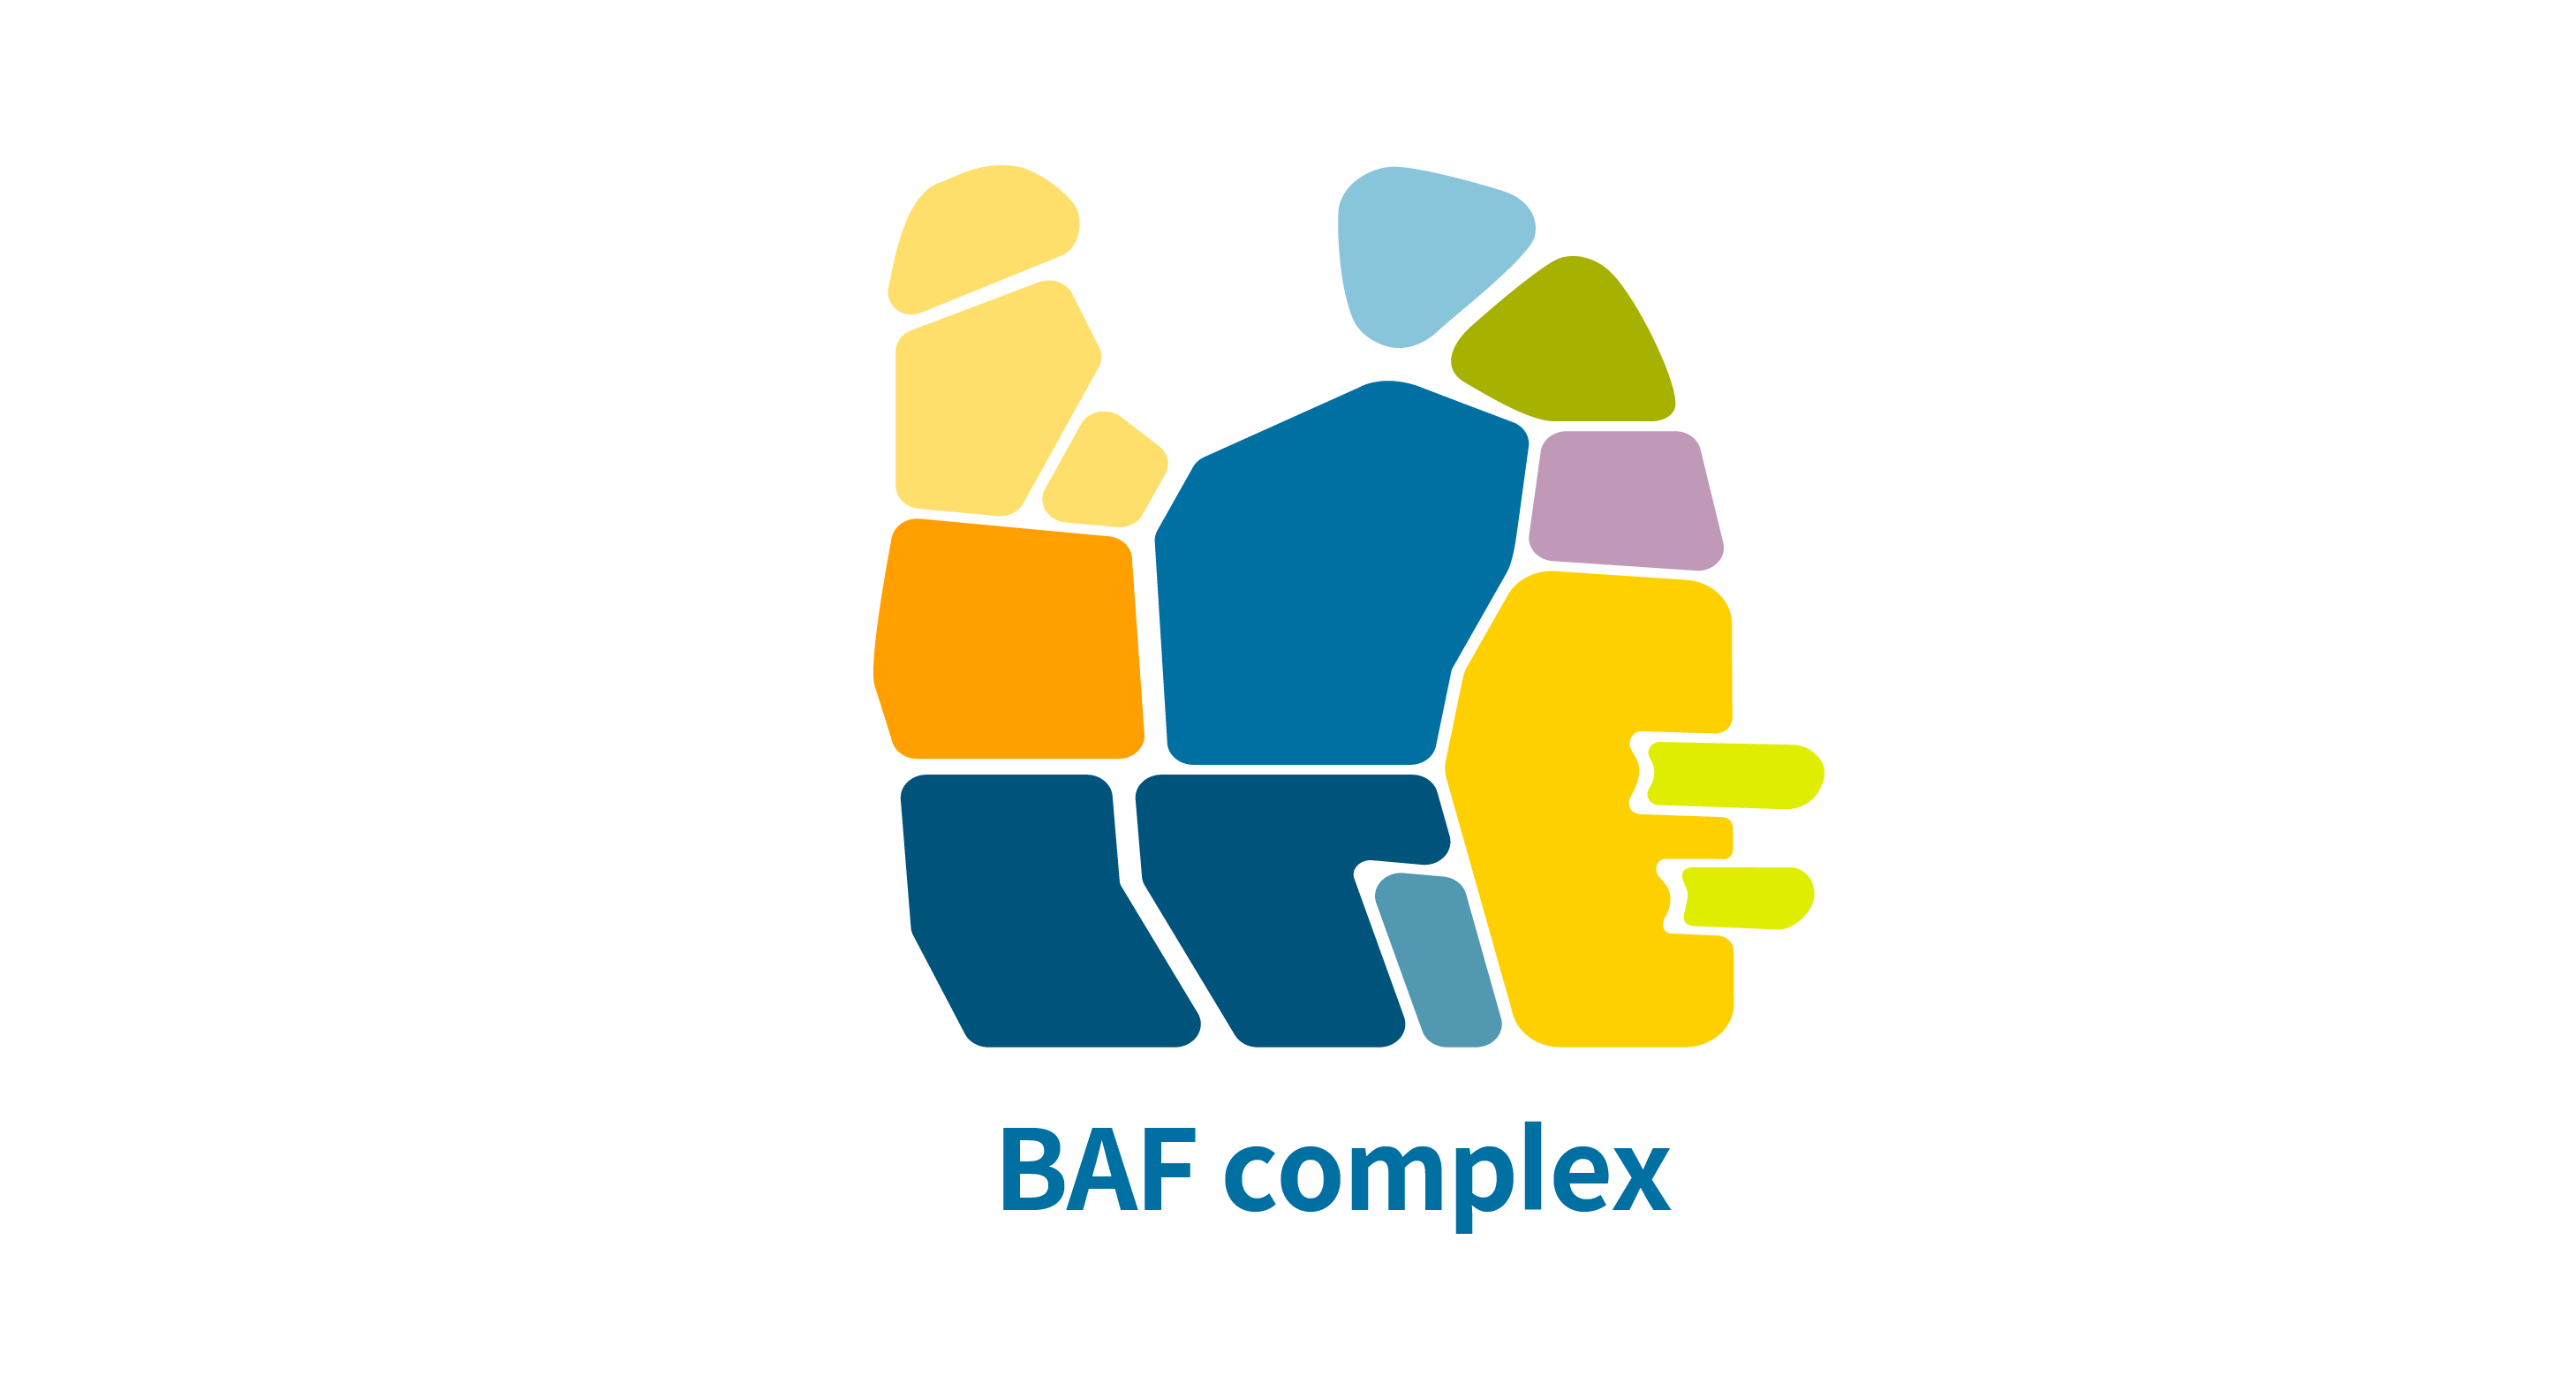 BAF complex figure, showing that the genetic variants on genes related to the BAF pathway can cause Coffin-Siris syndrome.